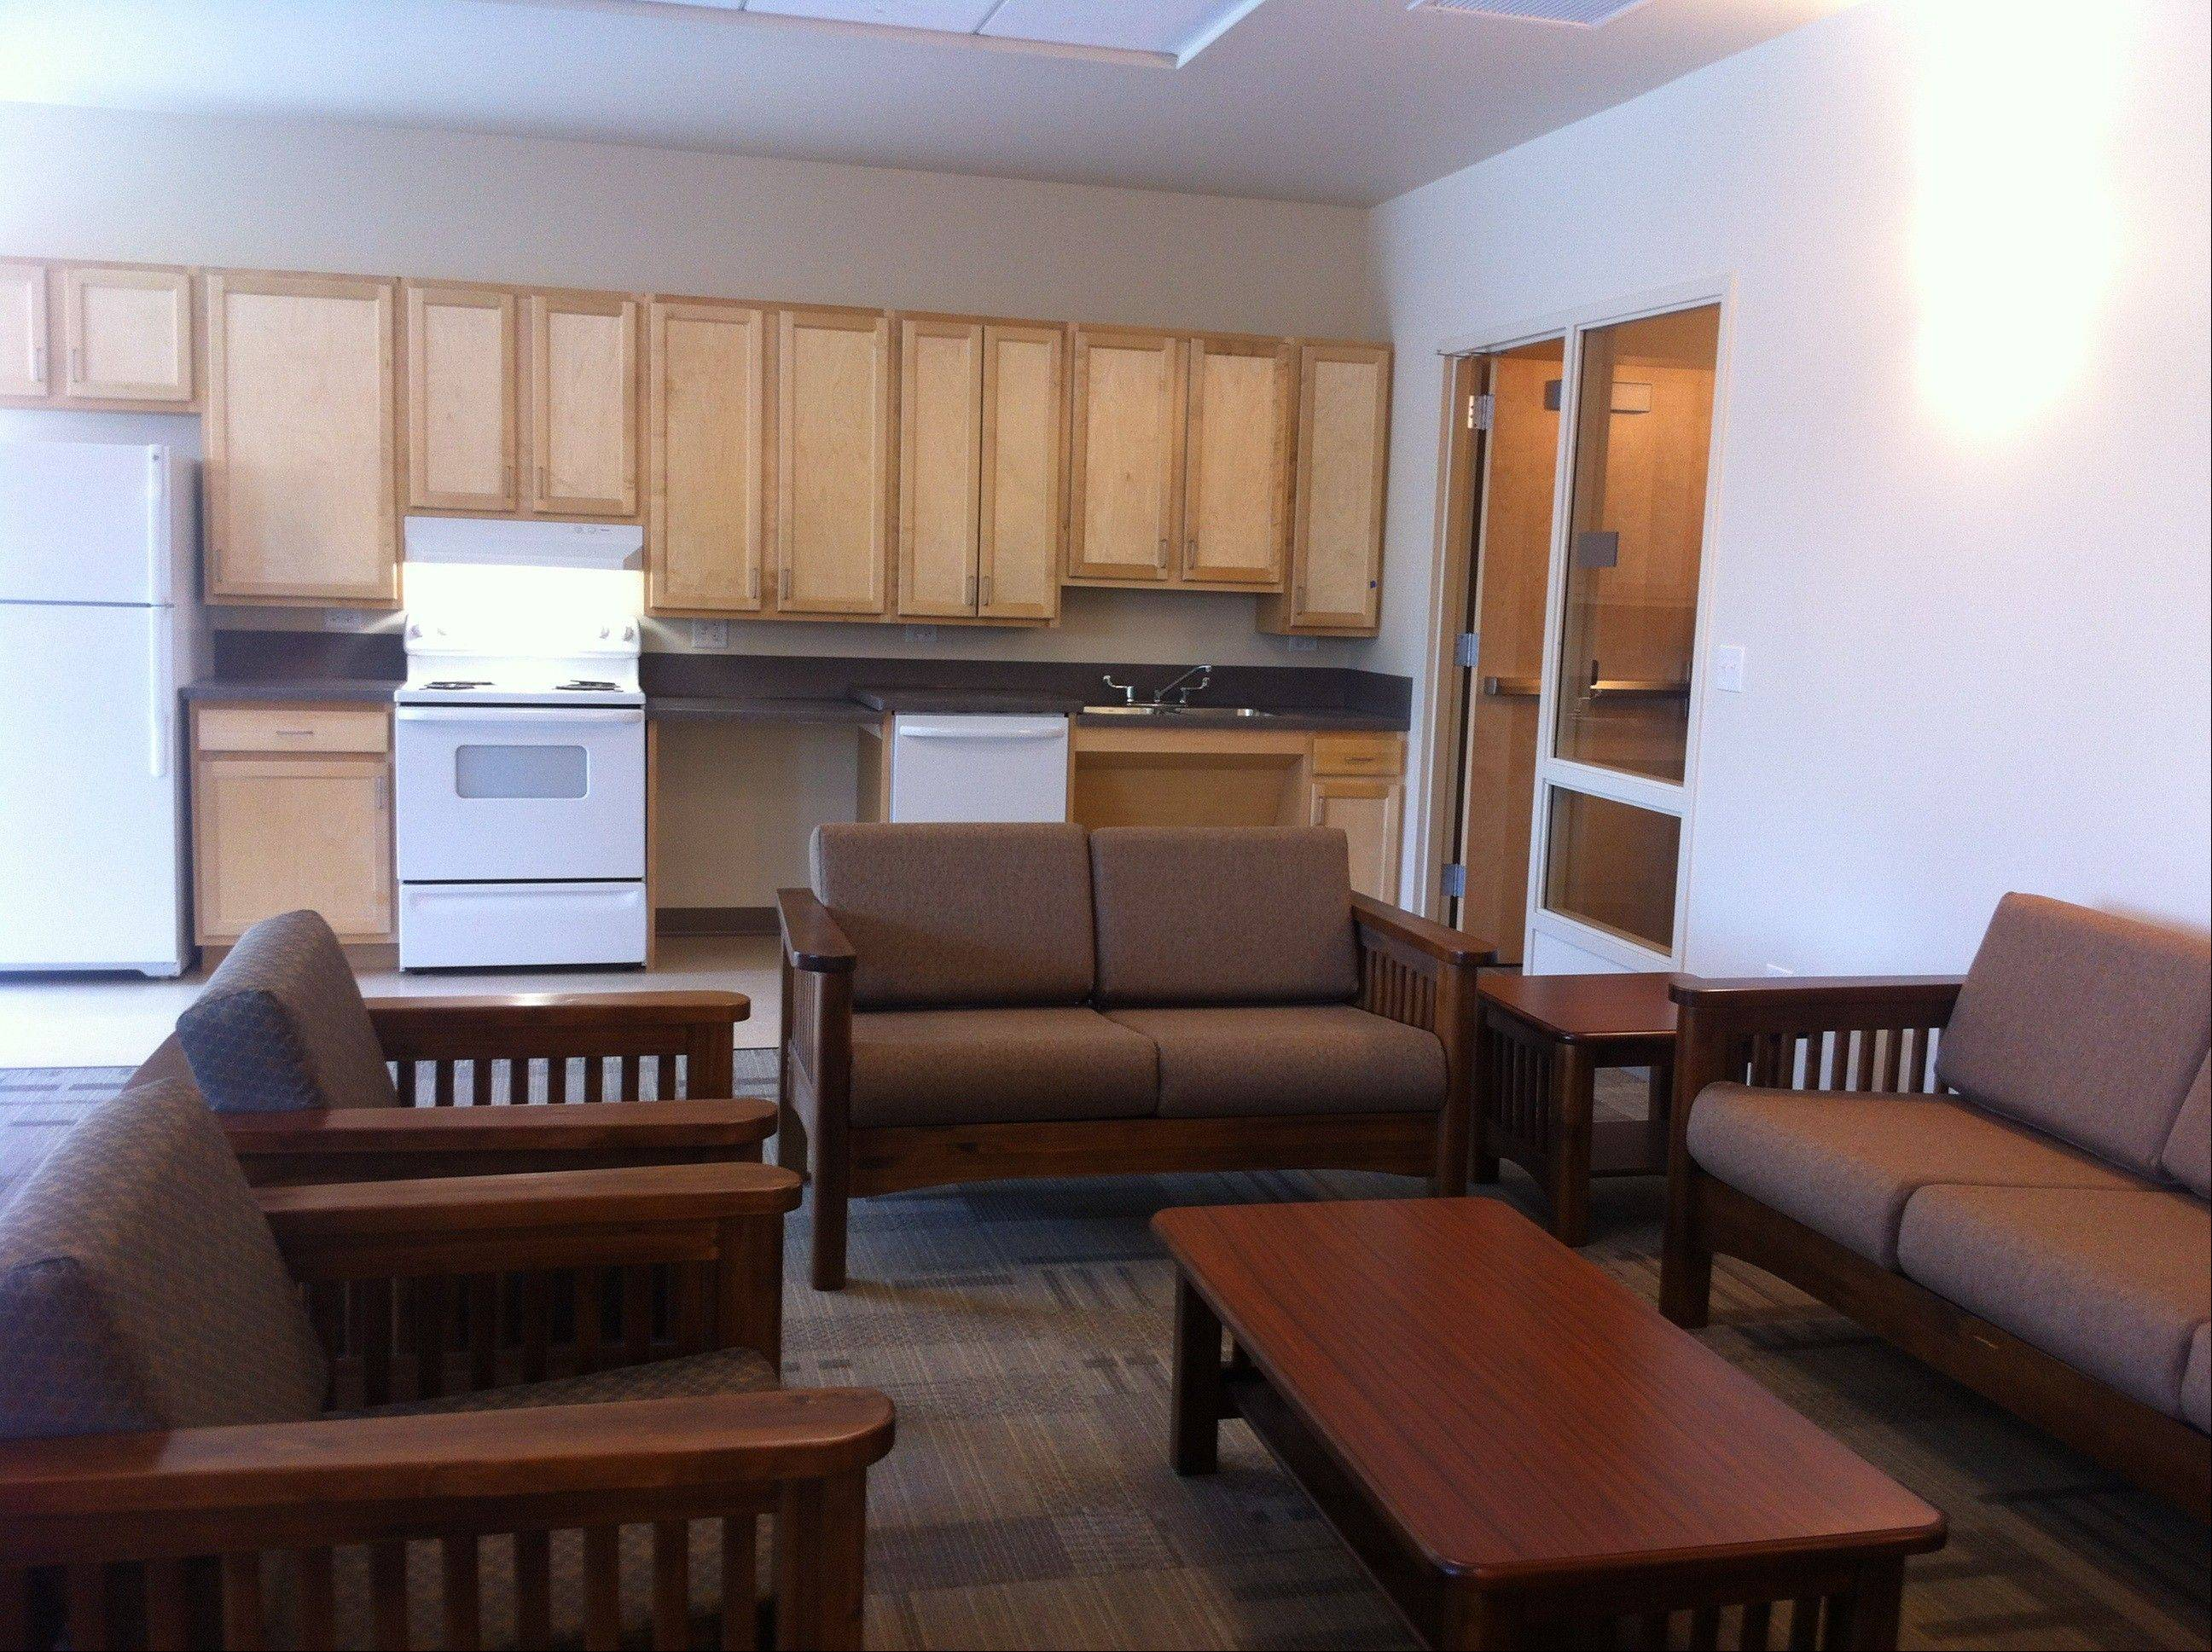 A community room with a kitchen will be available to residents.